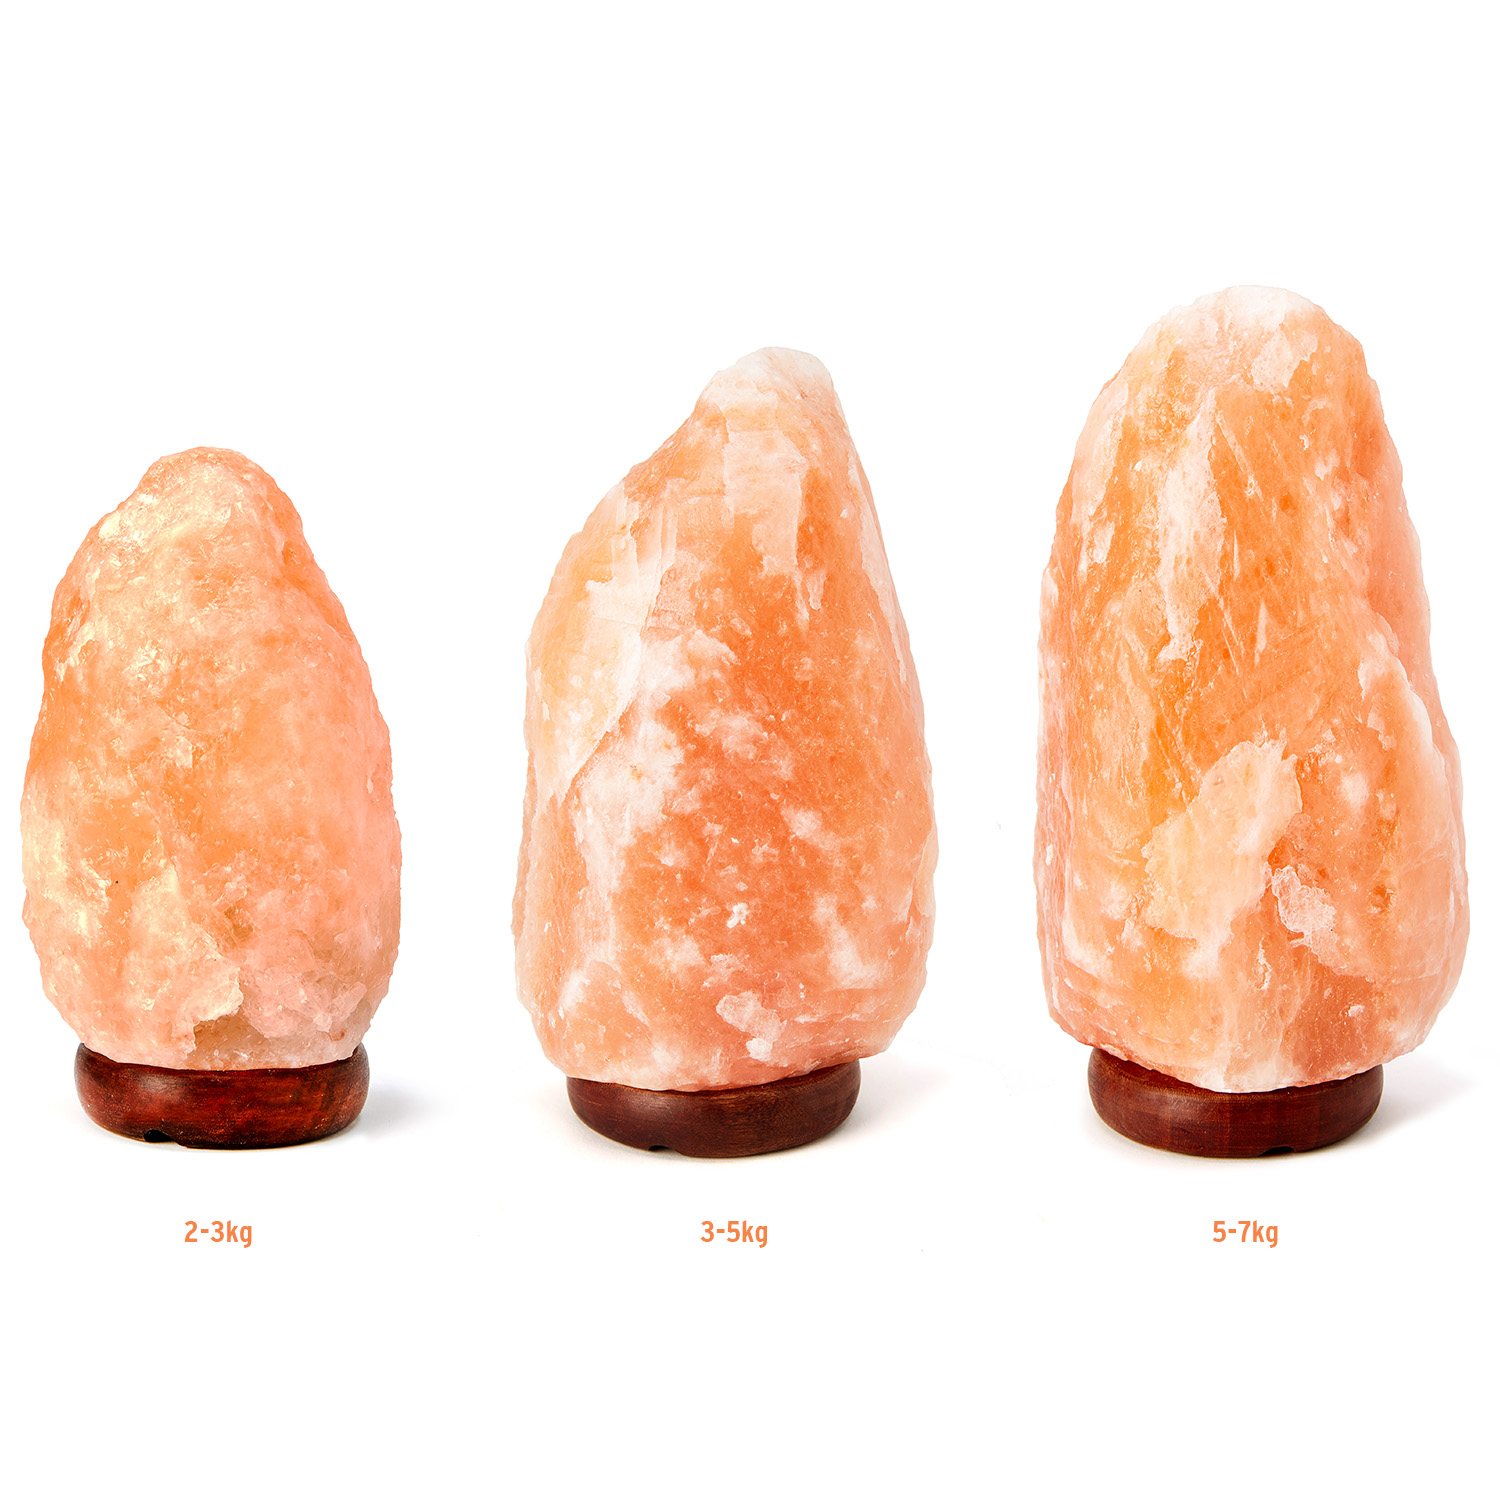 Village Originals Salt Lamps : 100+ [ Himalayan Salt Lamp ] Energetic Lights Himalayan Salt Lamps As A Unique Decor Piece ...